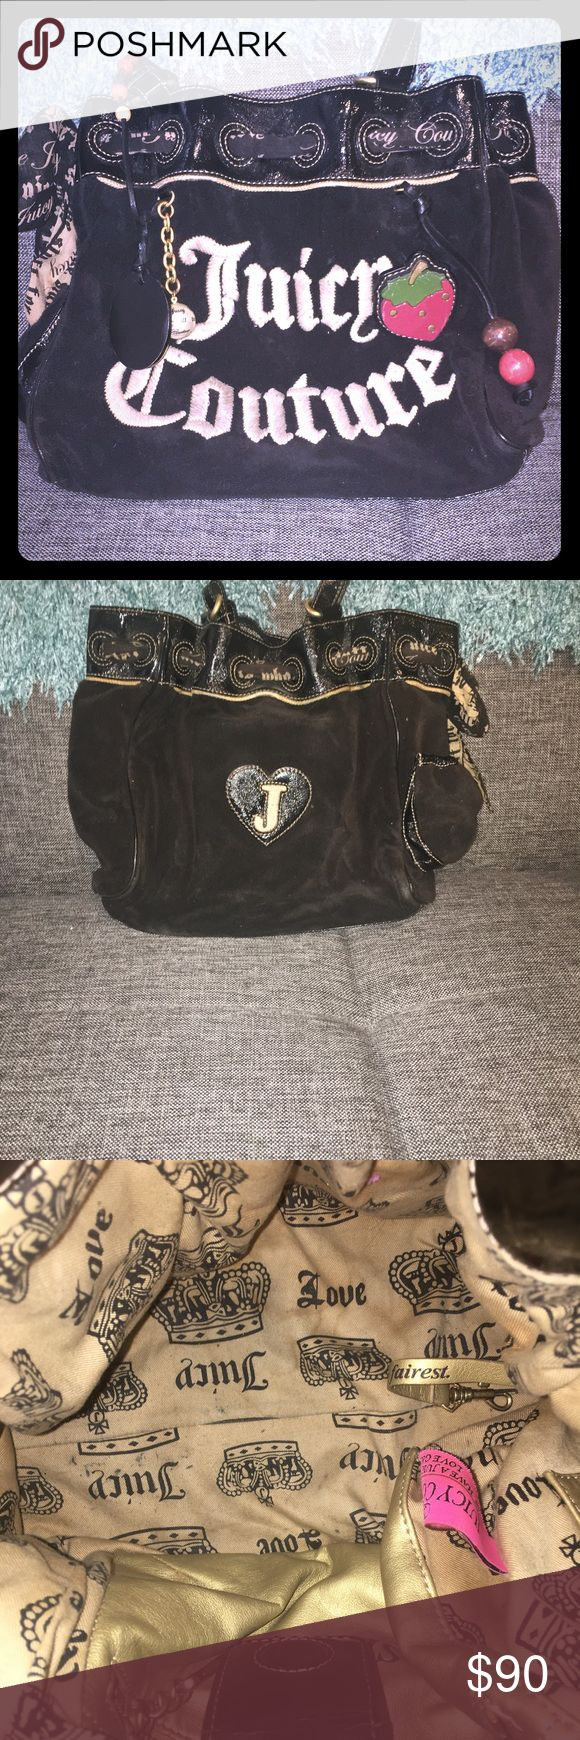 Juicy Couture Strawberry Fields Daydreamer Handbag Lightly used original juicy couture classic handbag Juicy Couture Bags Shoulder Bags